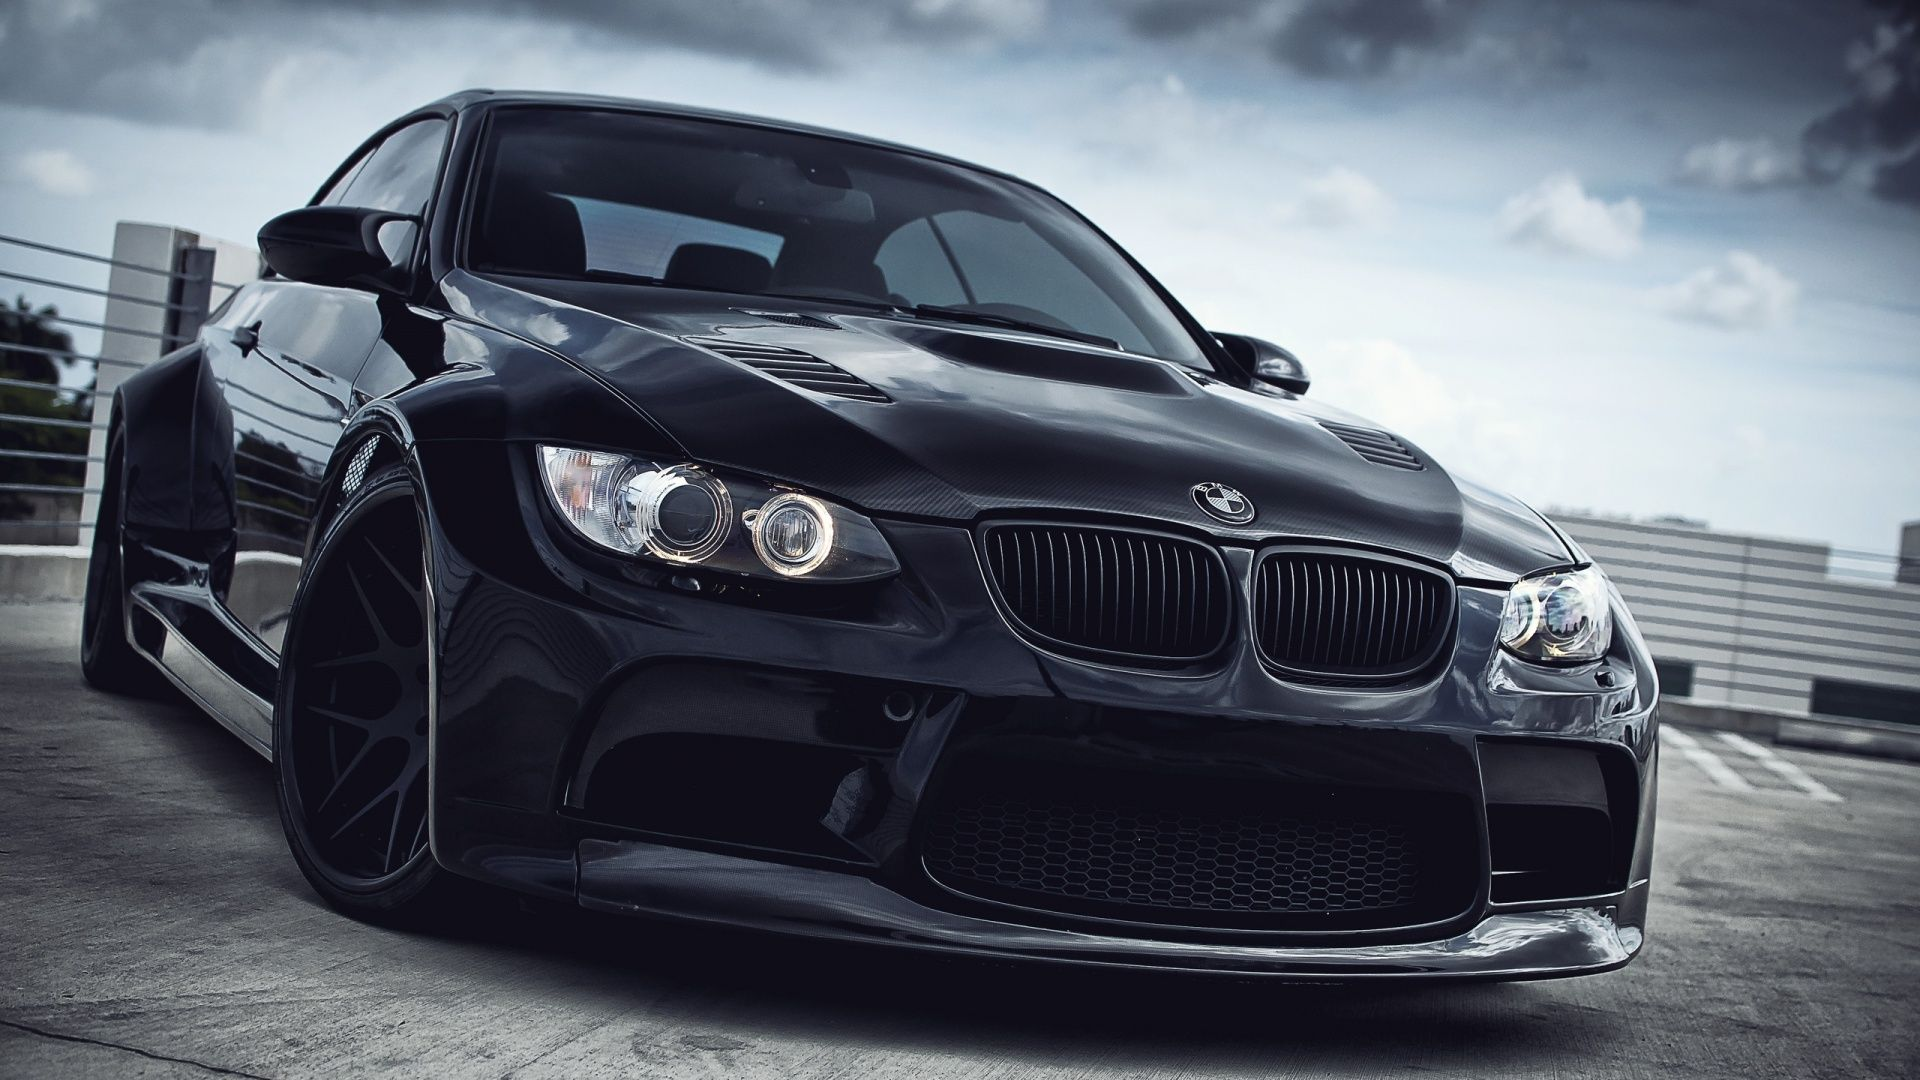 Nothing found for Sports Cars Wallpapers Bmw Hd Images 3